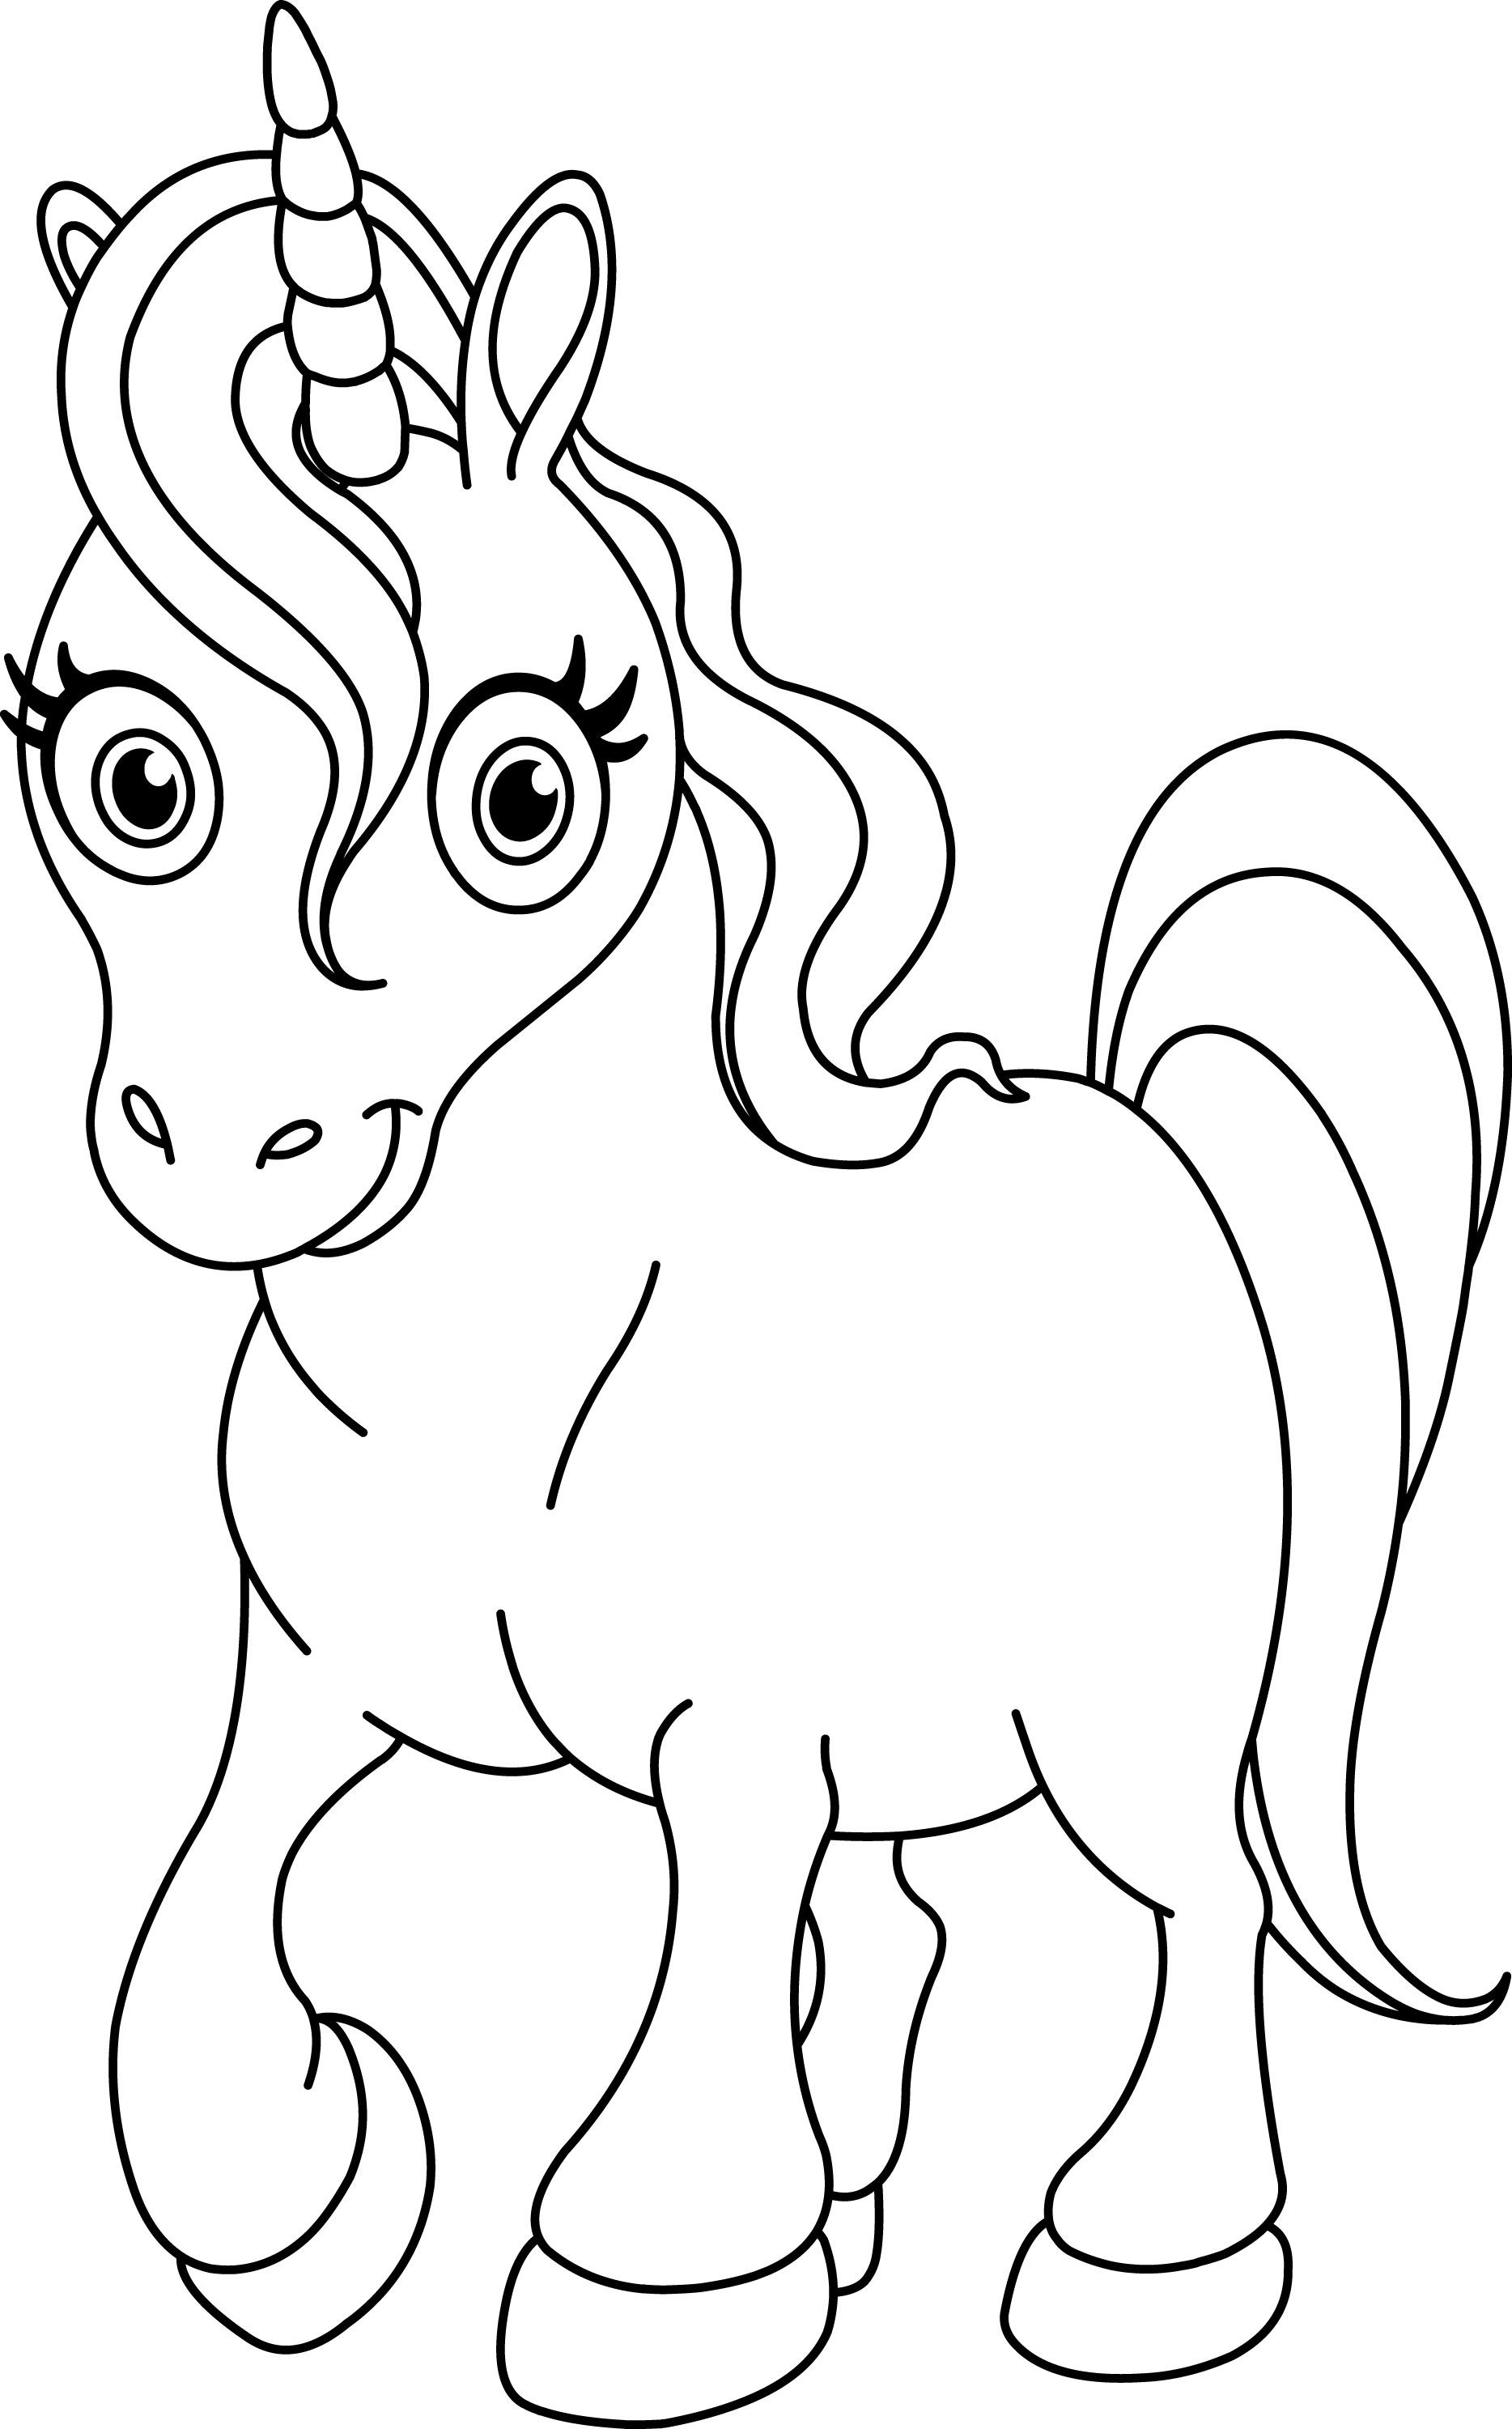 Pay Attention For This Explanation To Do The Unicorn Coloring